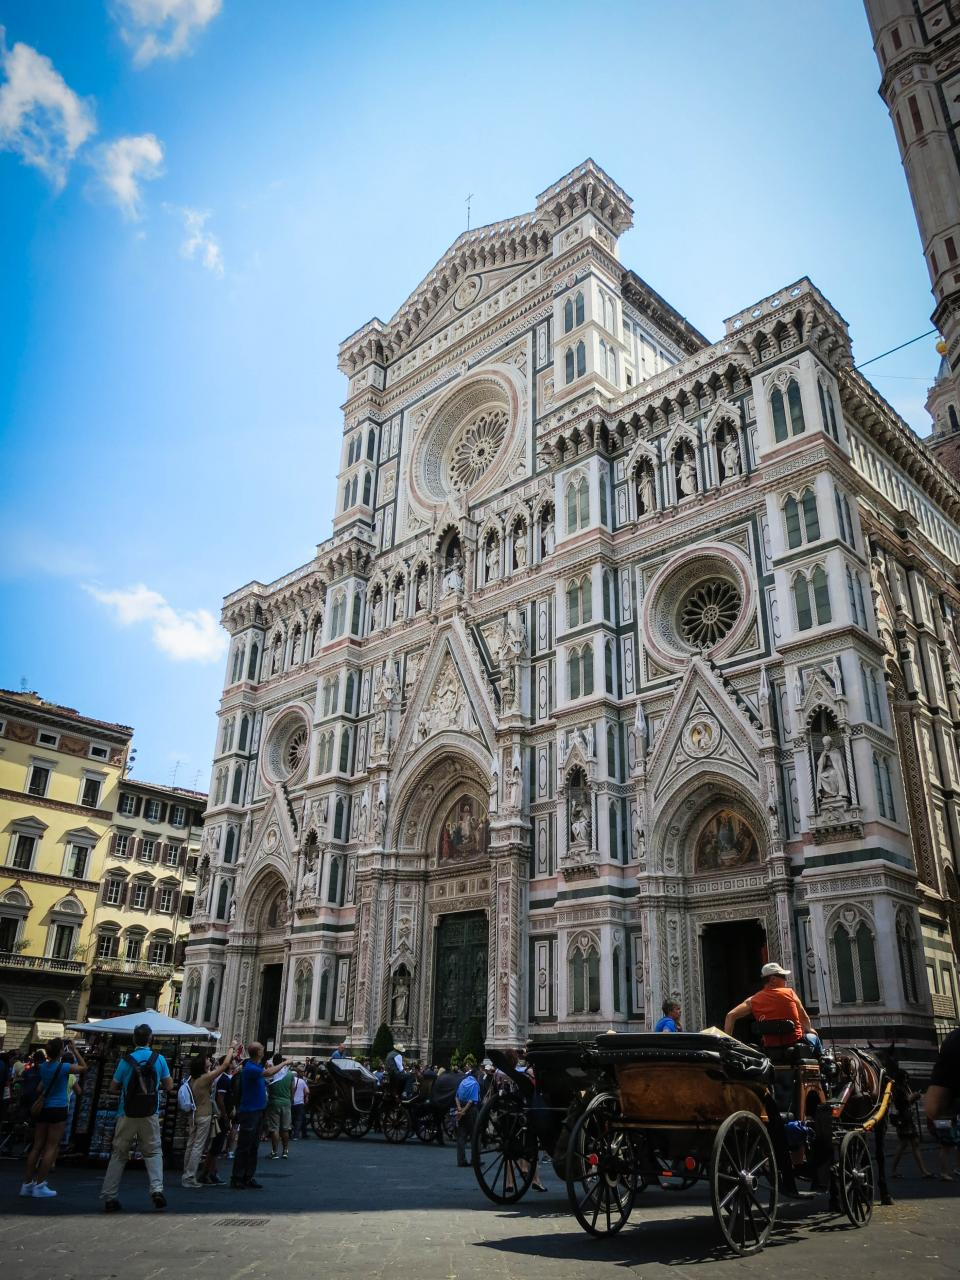 Santa Croce Basilica Florence Italy building architecture horses carriages people tourists sight seeing photographers